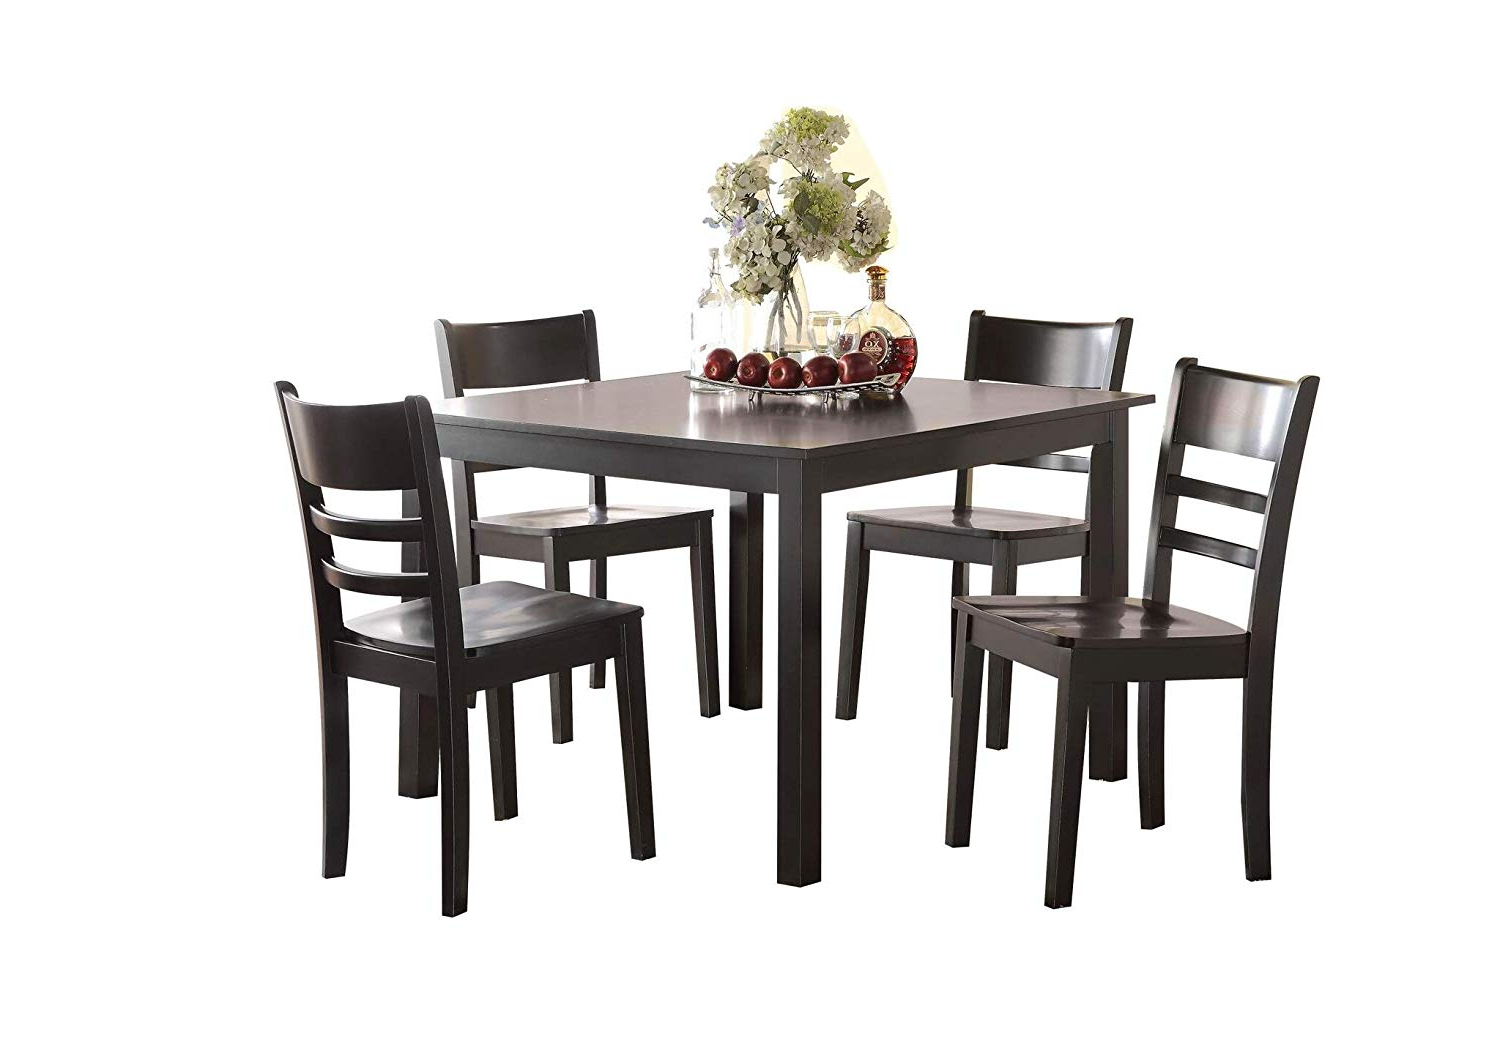 Widely Used Transitional 4 Seating Square Casual Dining Tables With Regard To Major Q 5Pc Pack Transitional Style Casual Black Finish Set With Dining  Table And Ladder Backrest Side Chairs,  (View 24 of 25)